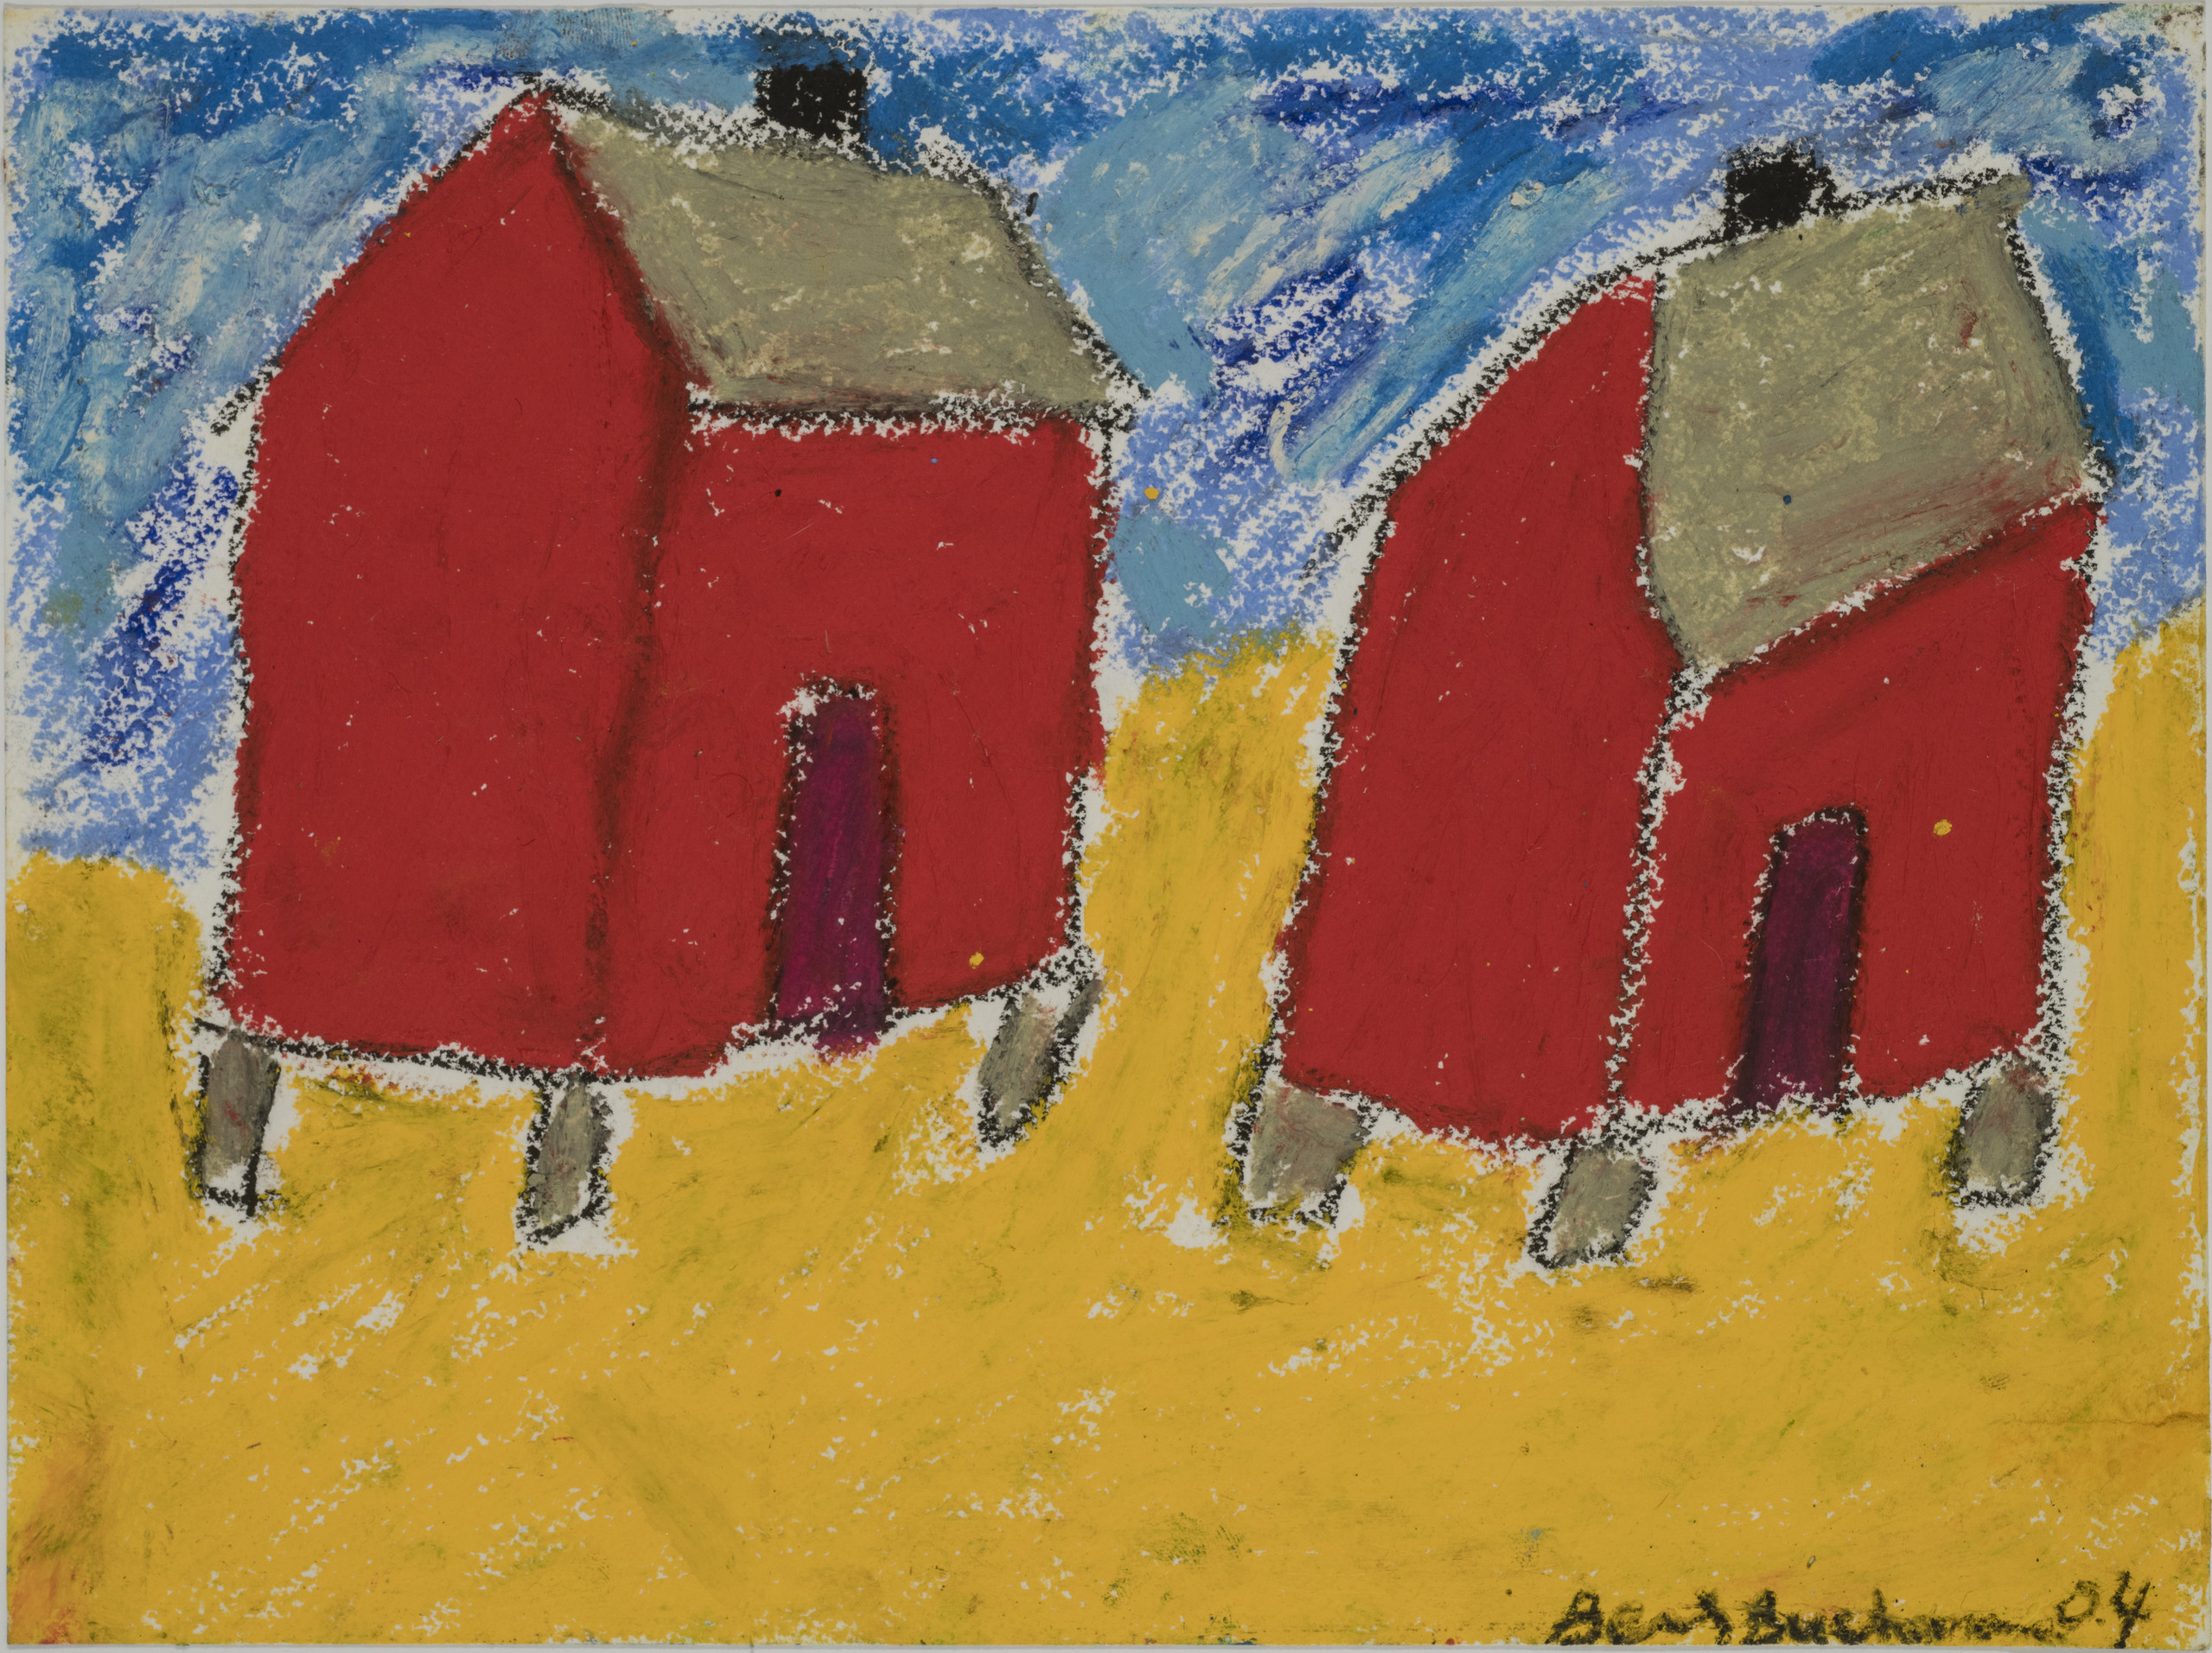 In this painting, two square red shacks with grey roofs and short, grey stilt bottoms sit atop a yellow ground and against a sky blue background. The painting is rendered in a basic, child-like style.